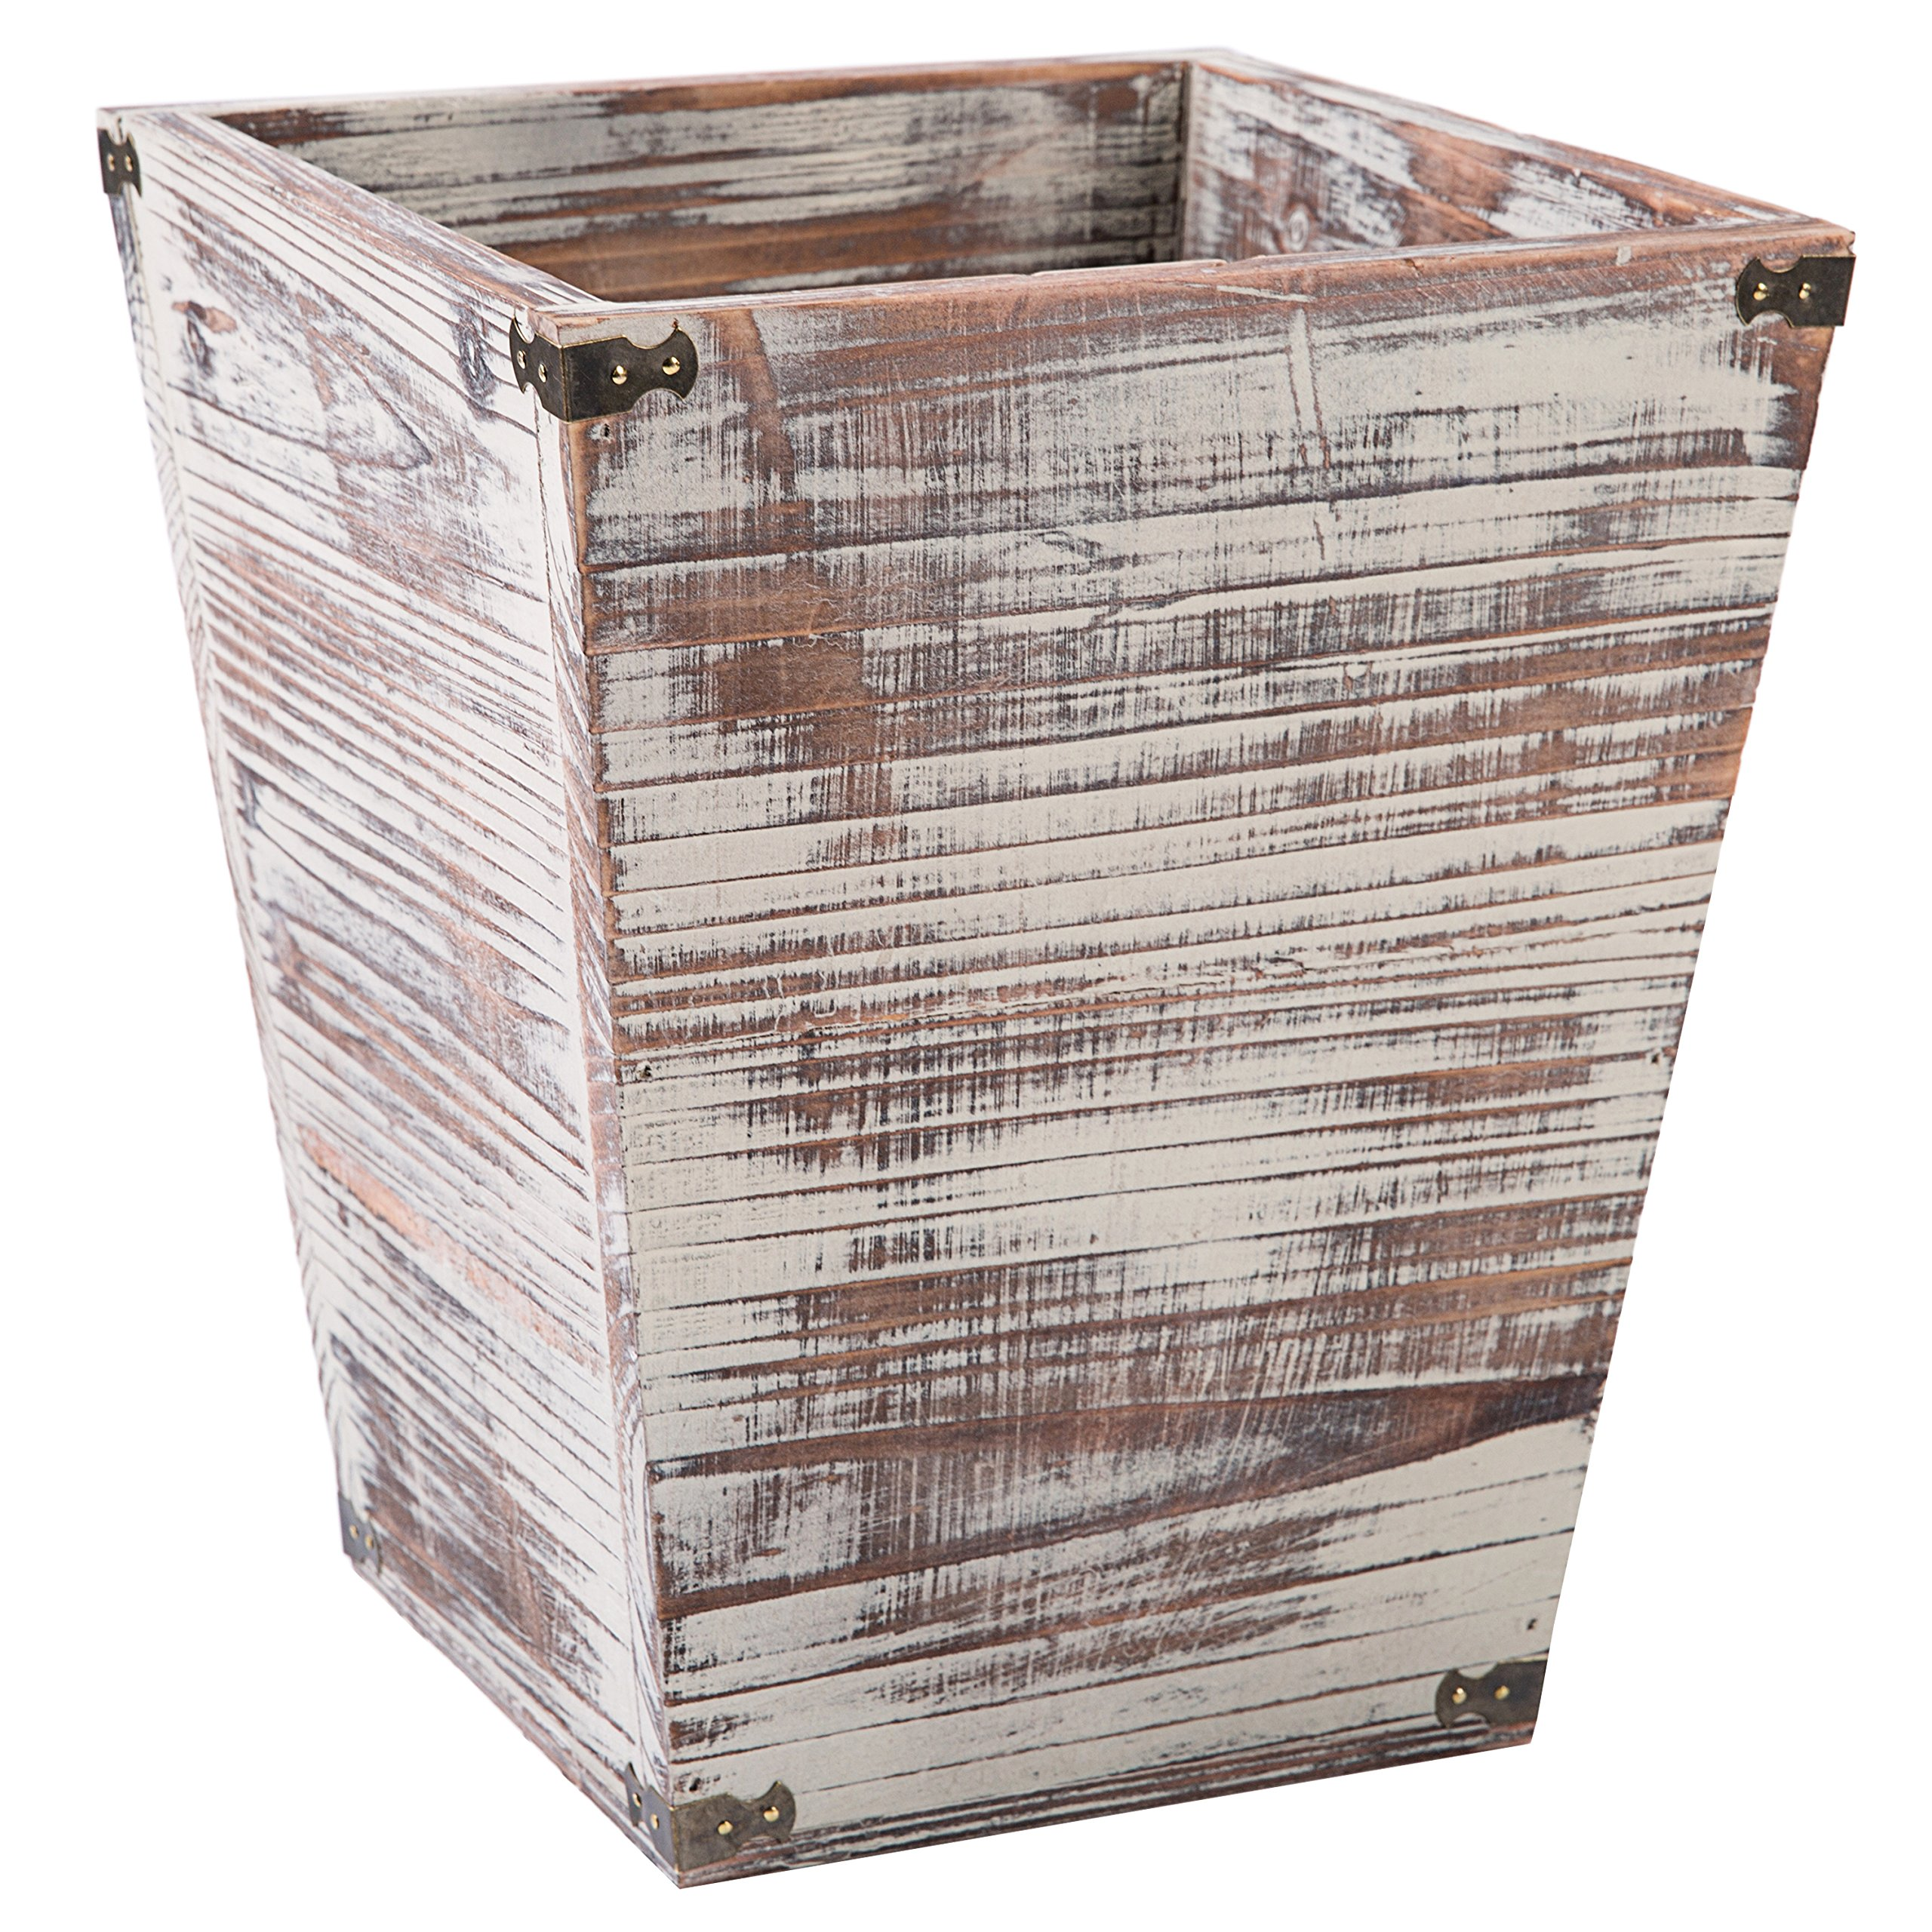 Farmhouse Style Torched Wood Square Wastebasket Bin with Decorative Metal Brackets